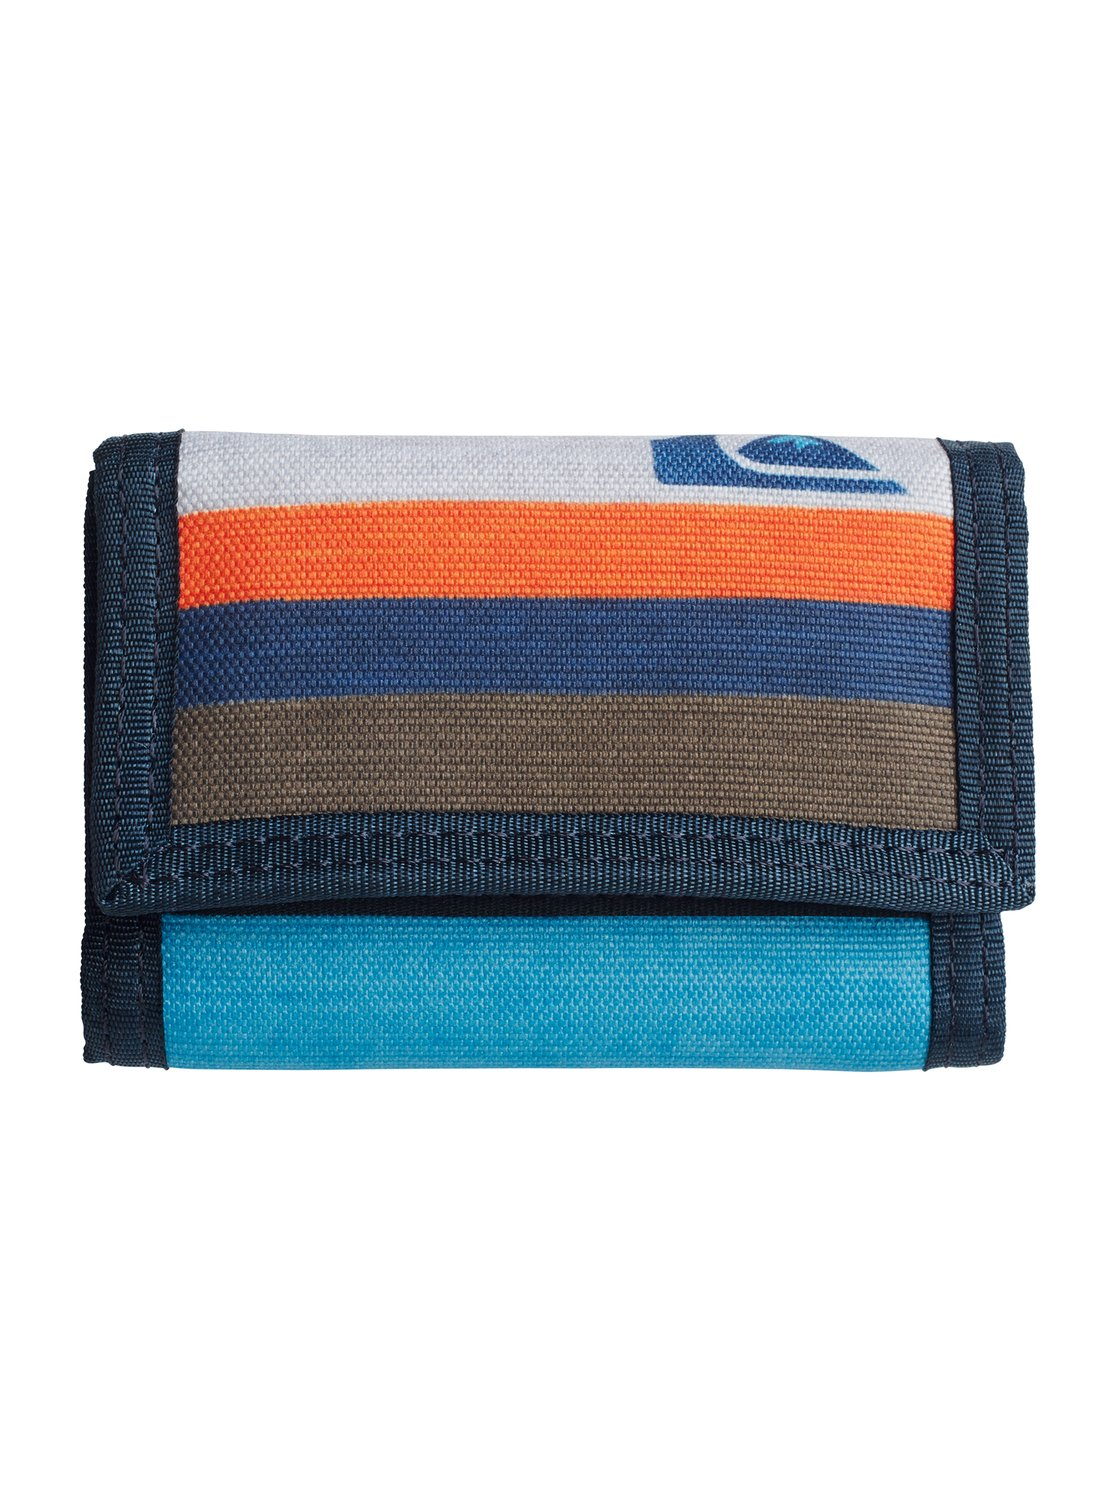 Shop eBay for great deals on Boys' Wallets. You'll find new or used products in Boys' Wallets on eBay. Free shipping on selected items.